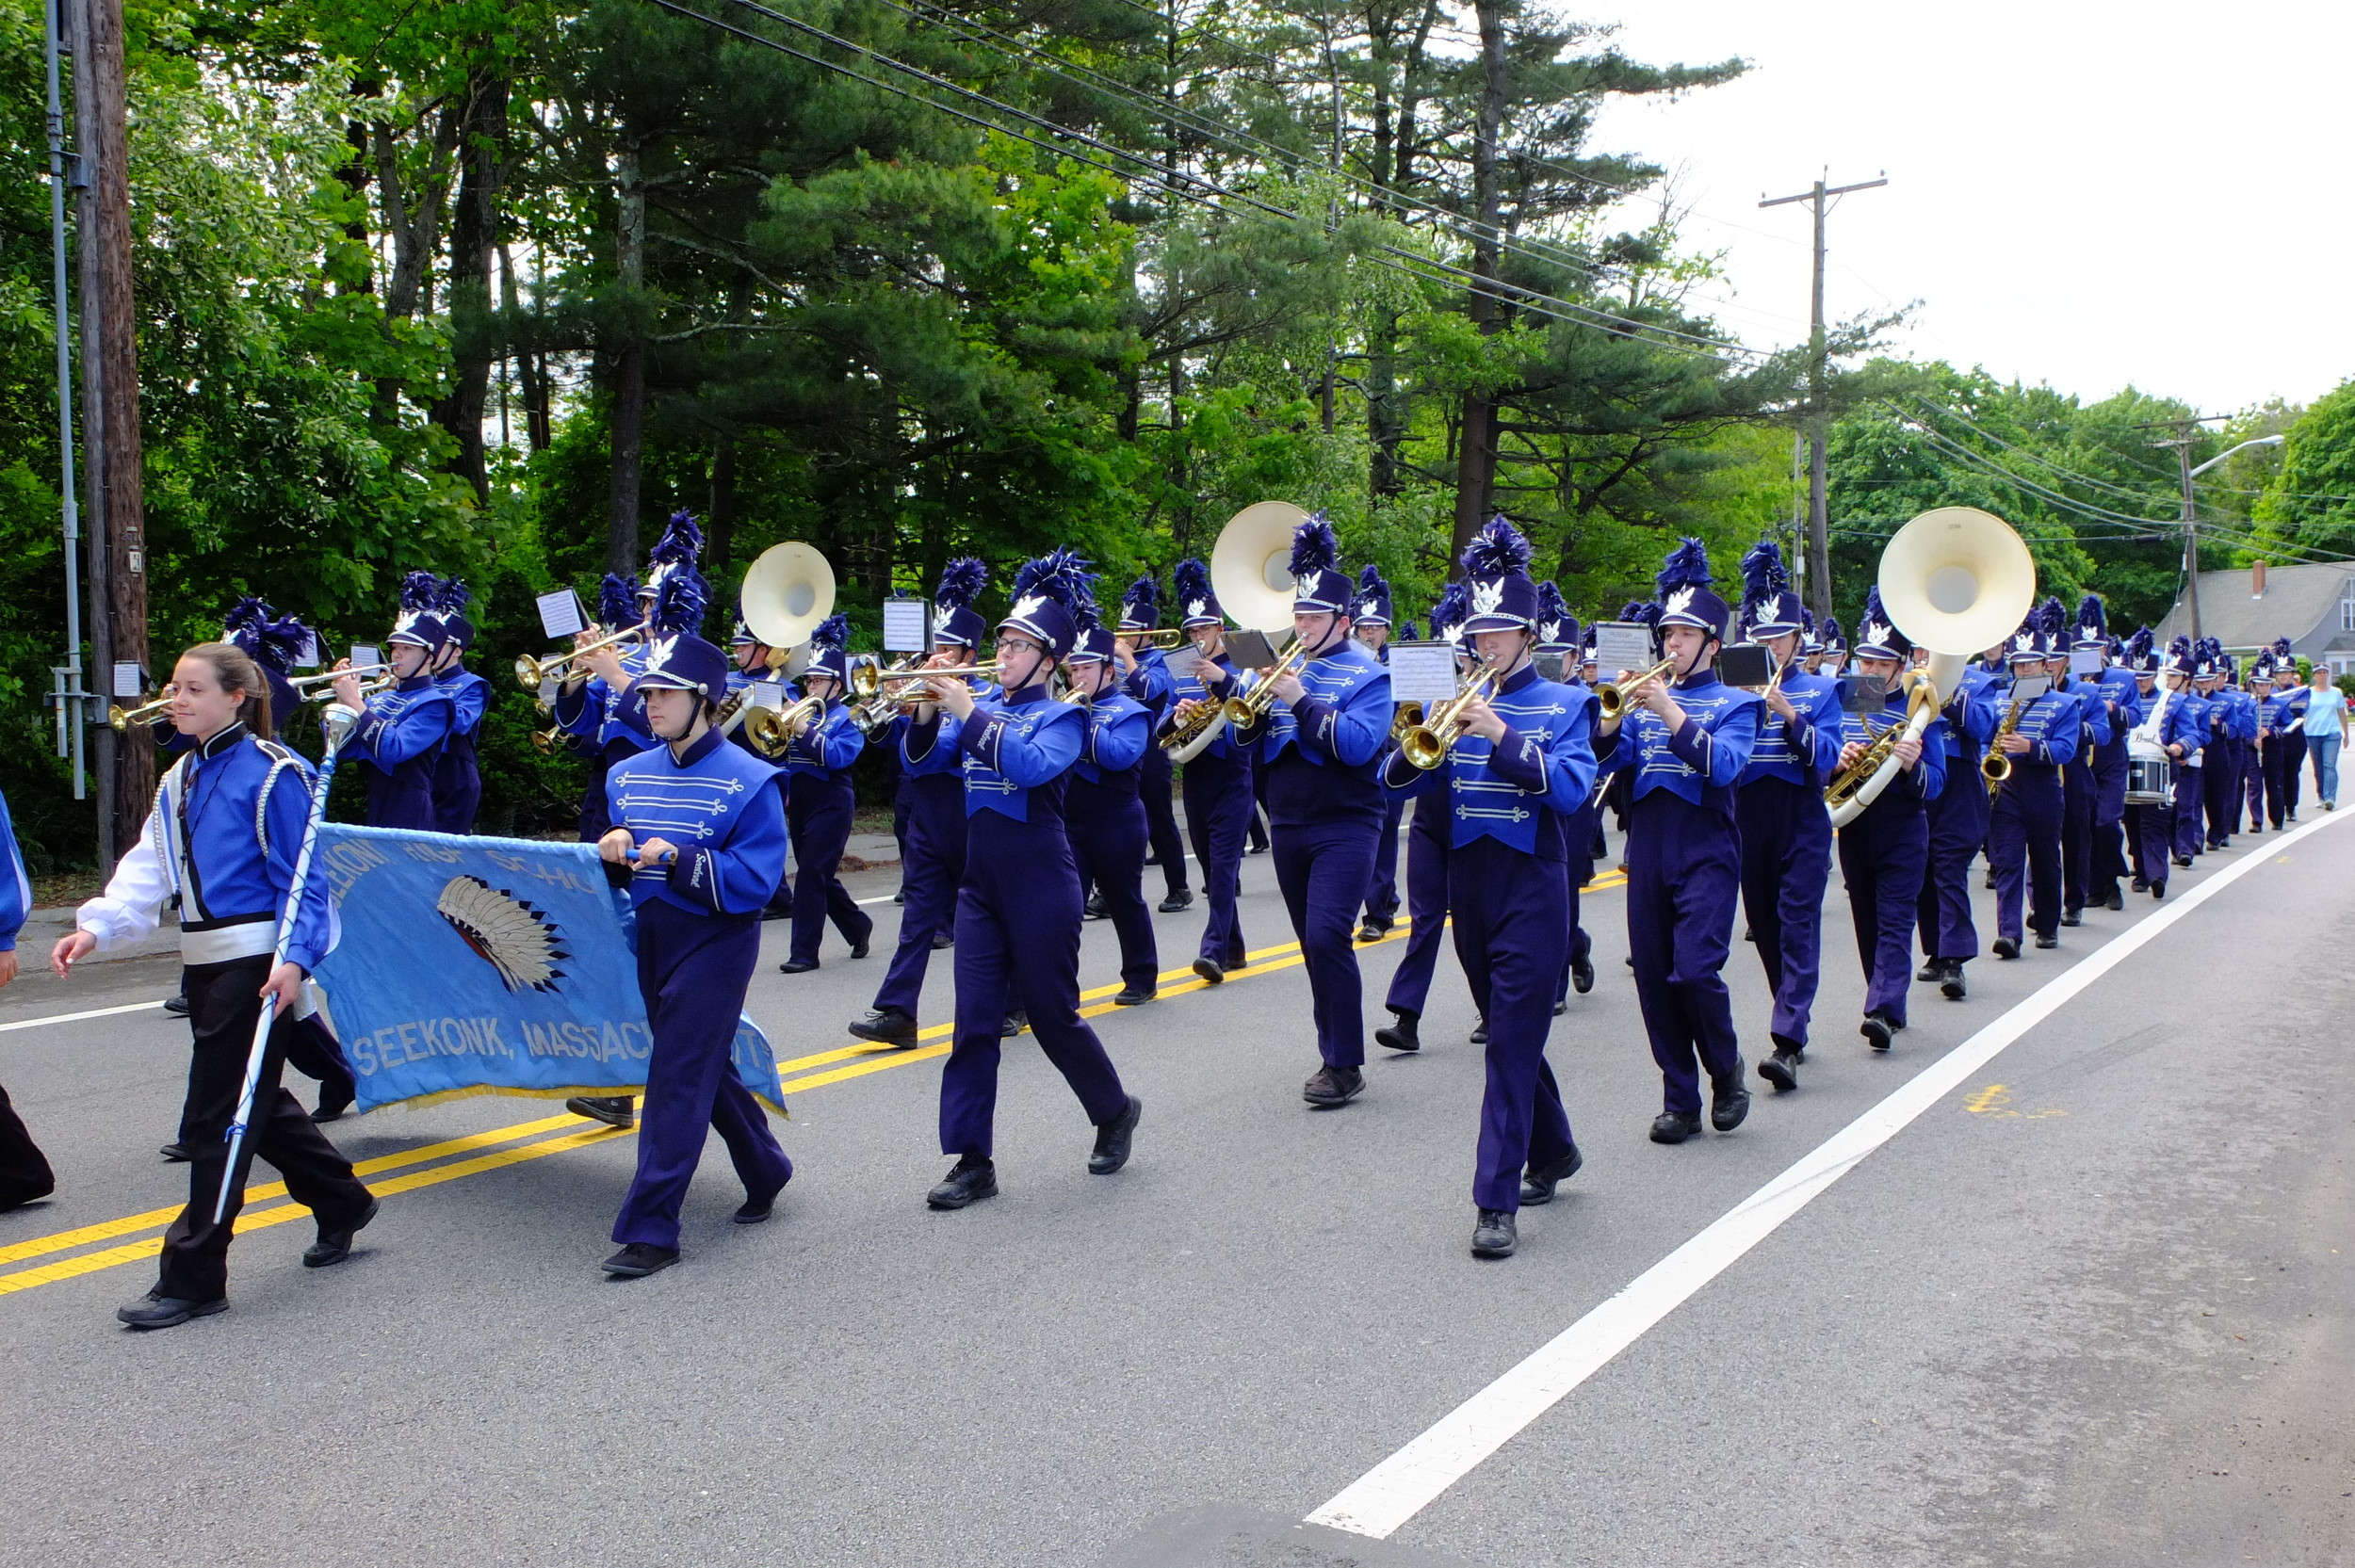 Seekonk High School band marches in the parade.